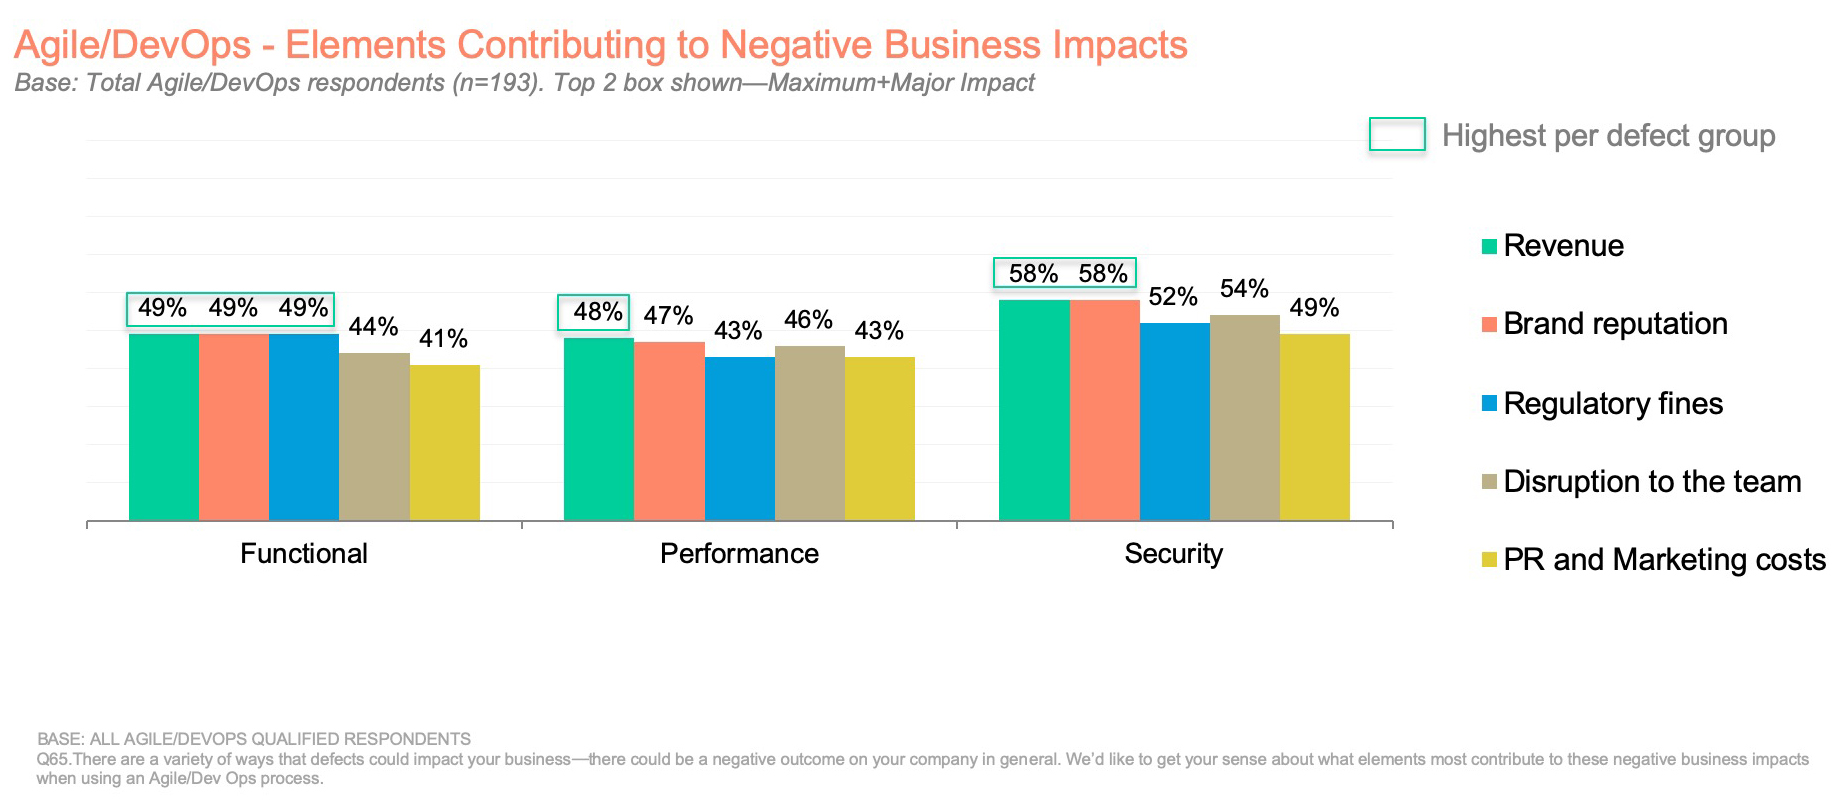 Agile/DevOps- Elements Contributing to Negative Business Impacts